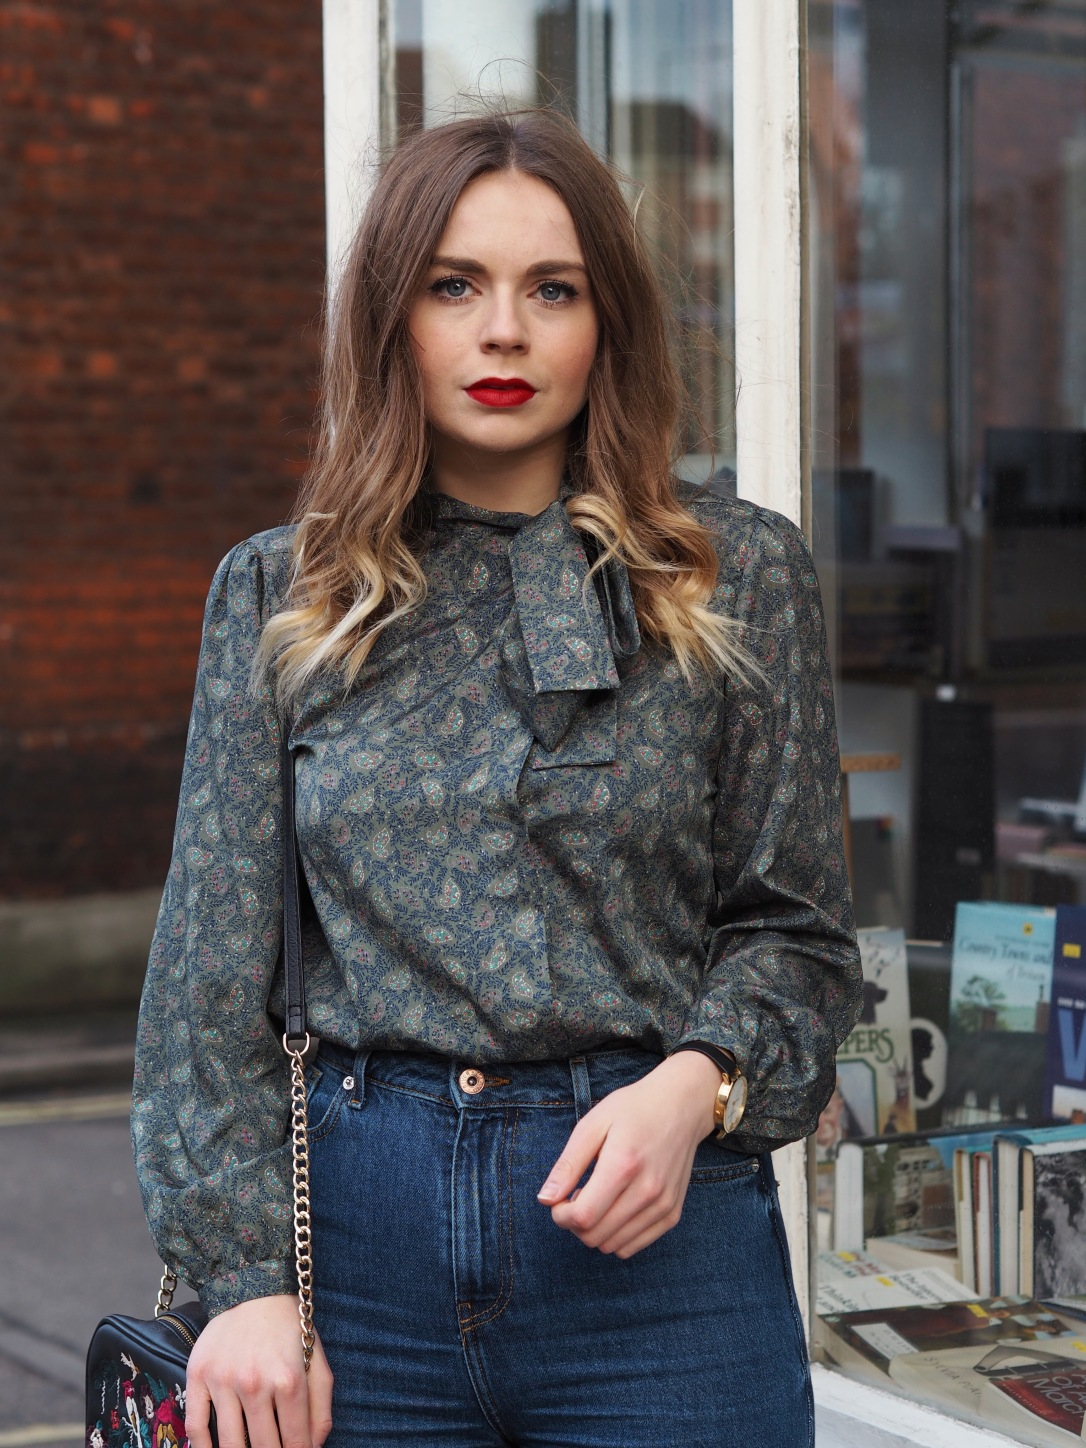 How to style a vintage blouse